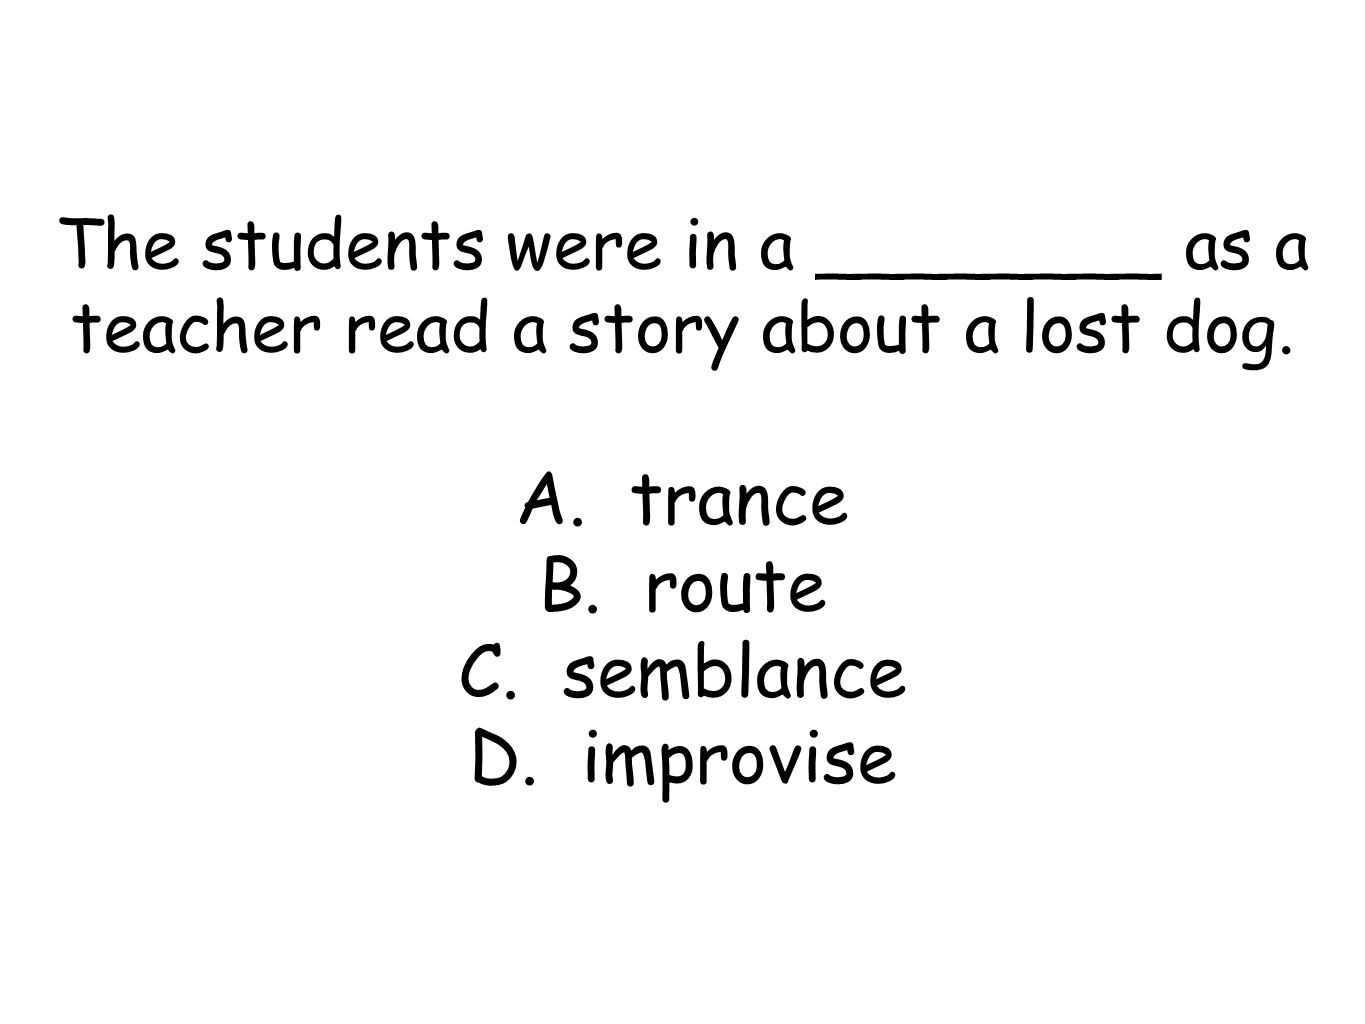 The students were in a ________ as a teacher read a story about a lost dog.